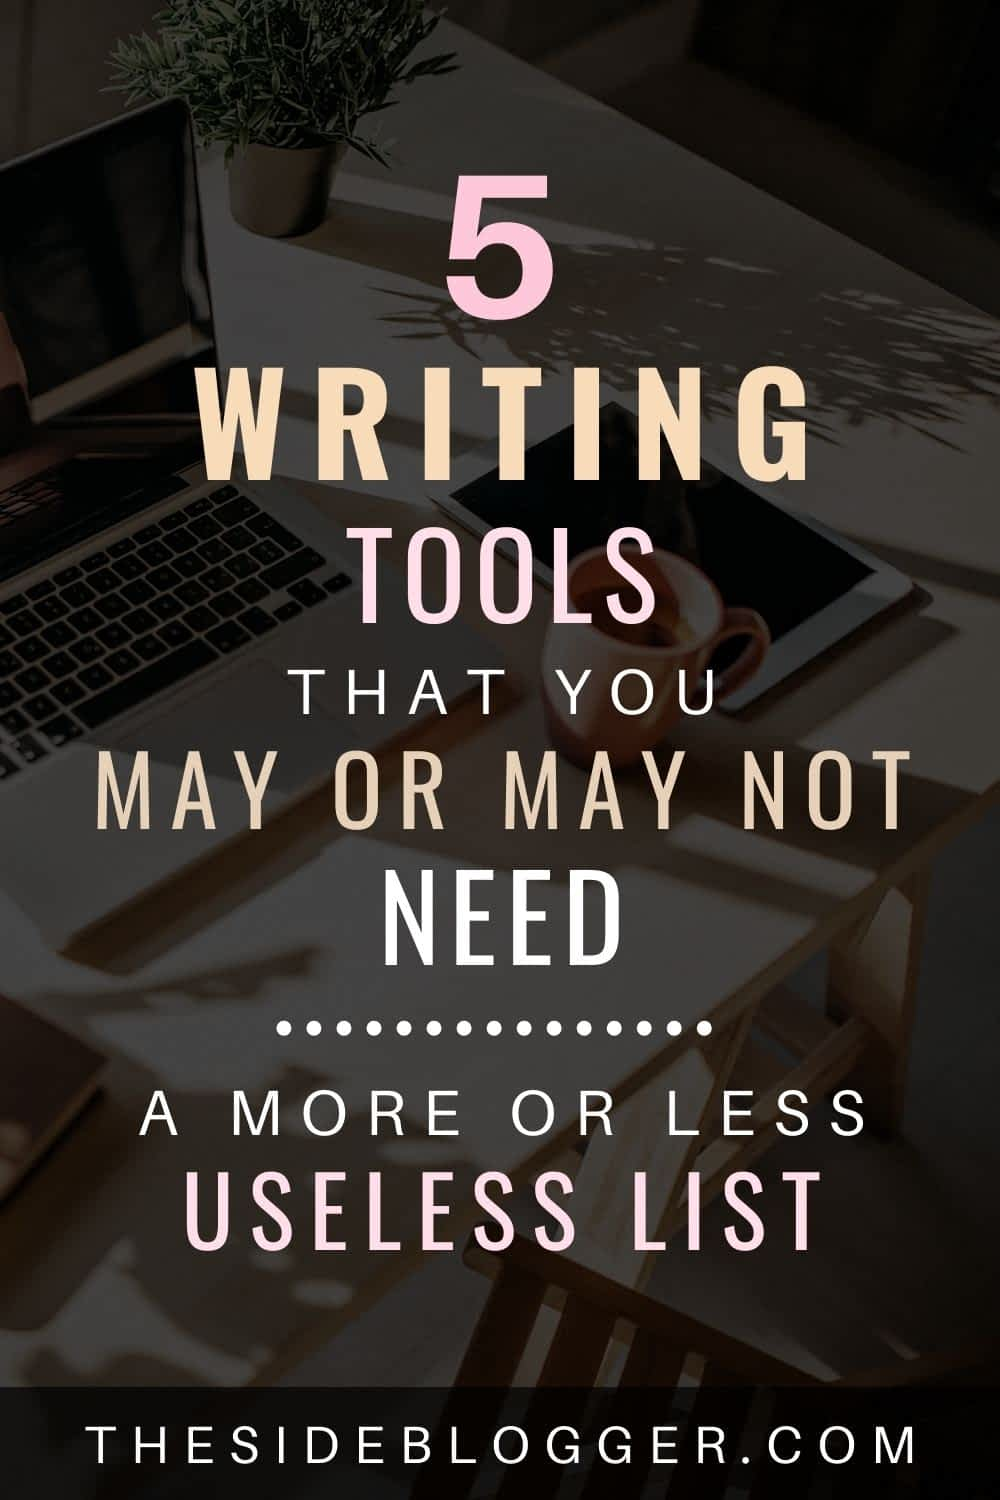 Writing tools for writers and bloggers